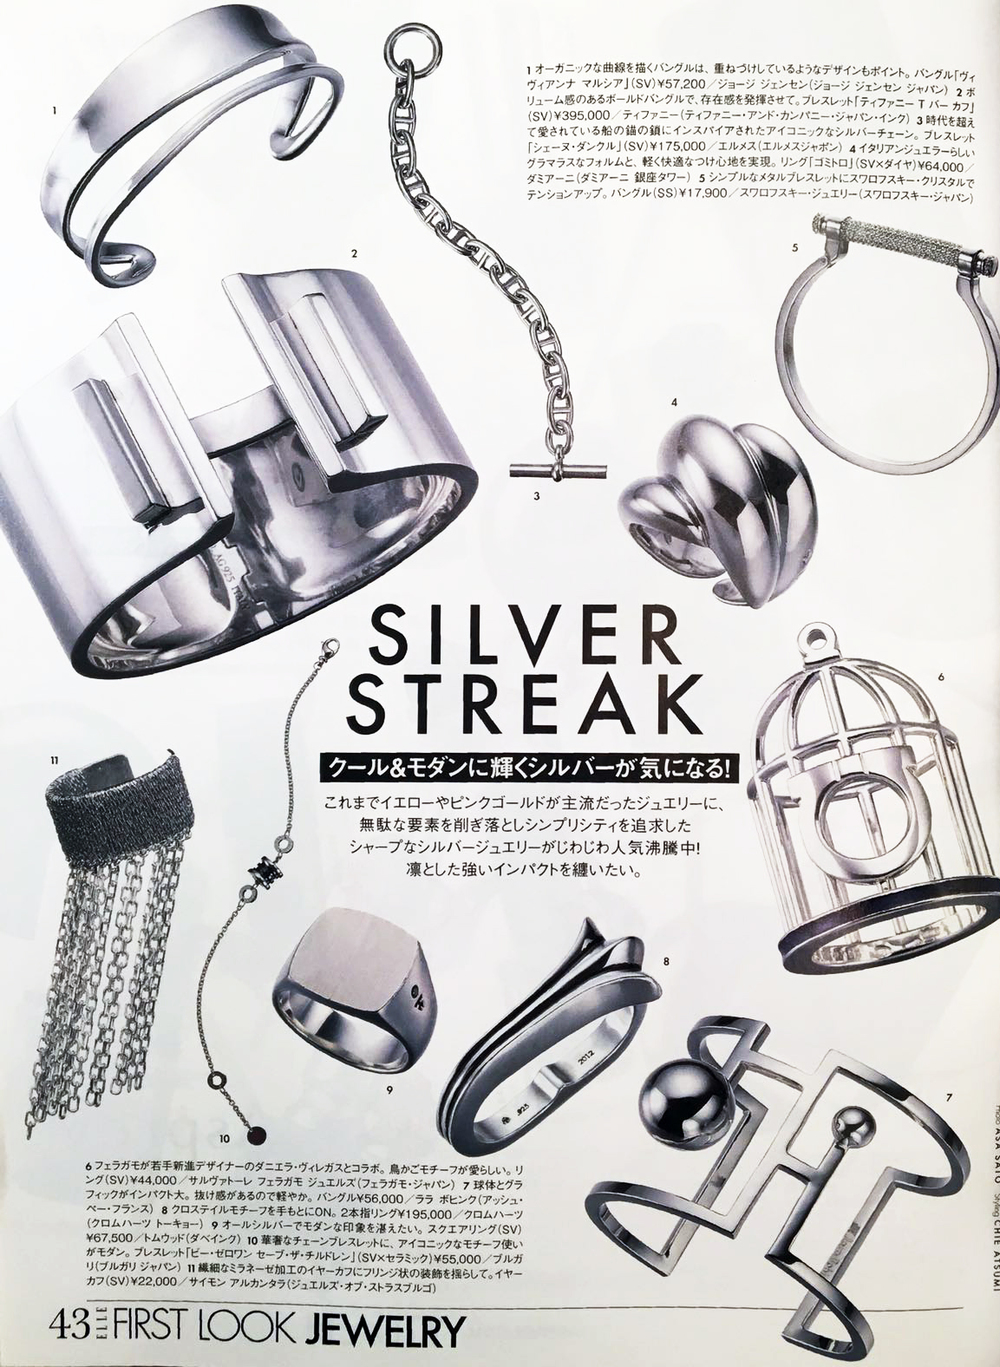 ELLE JAPAN, SEPTEMBER 2016 ISSUE. SIMON ALCANTARA HAND WOVEN STERLING SILVER FRINGE EAR CUFF